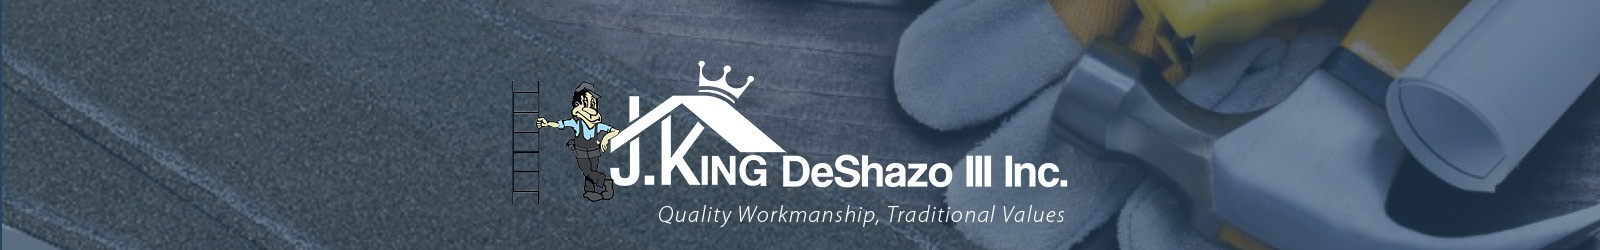 J.King DeShazo Roofing - Ashland Virginia - Commercial & Residential Roofing